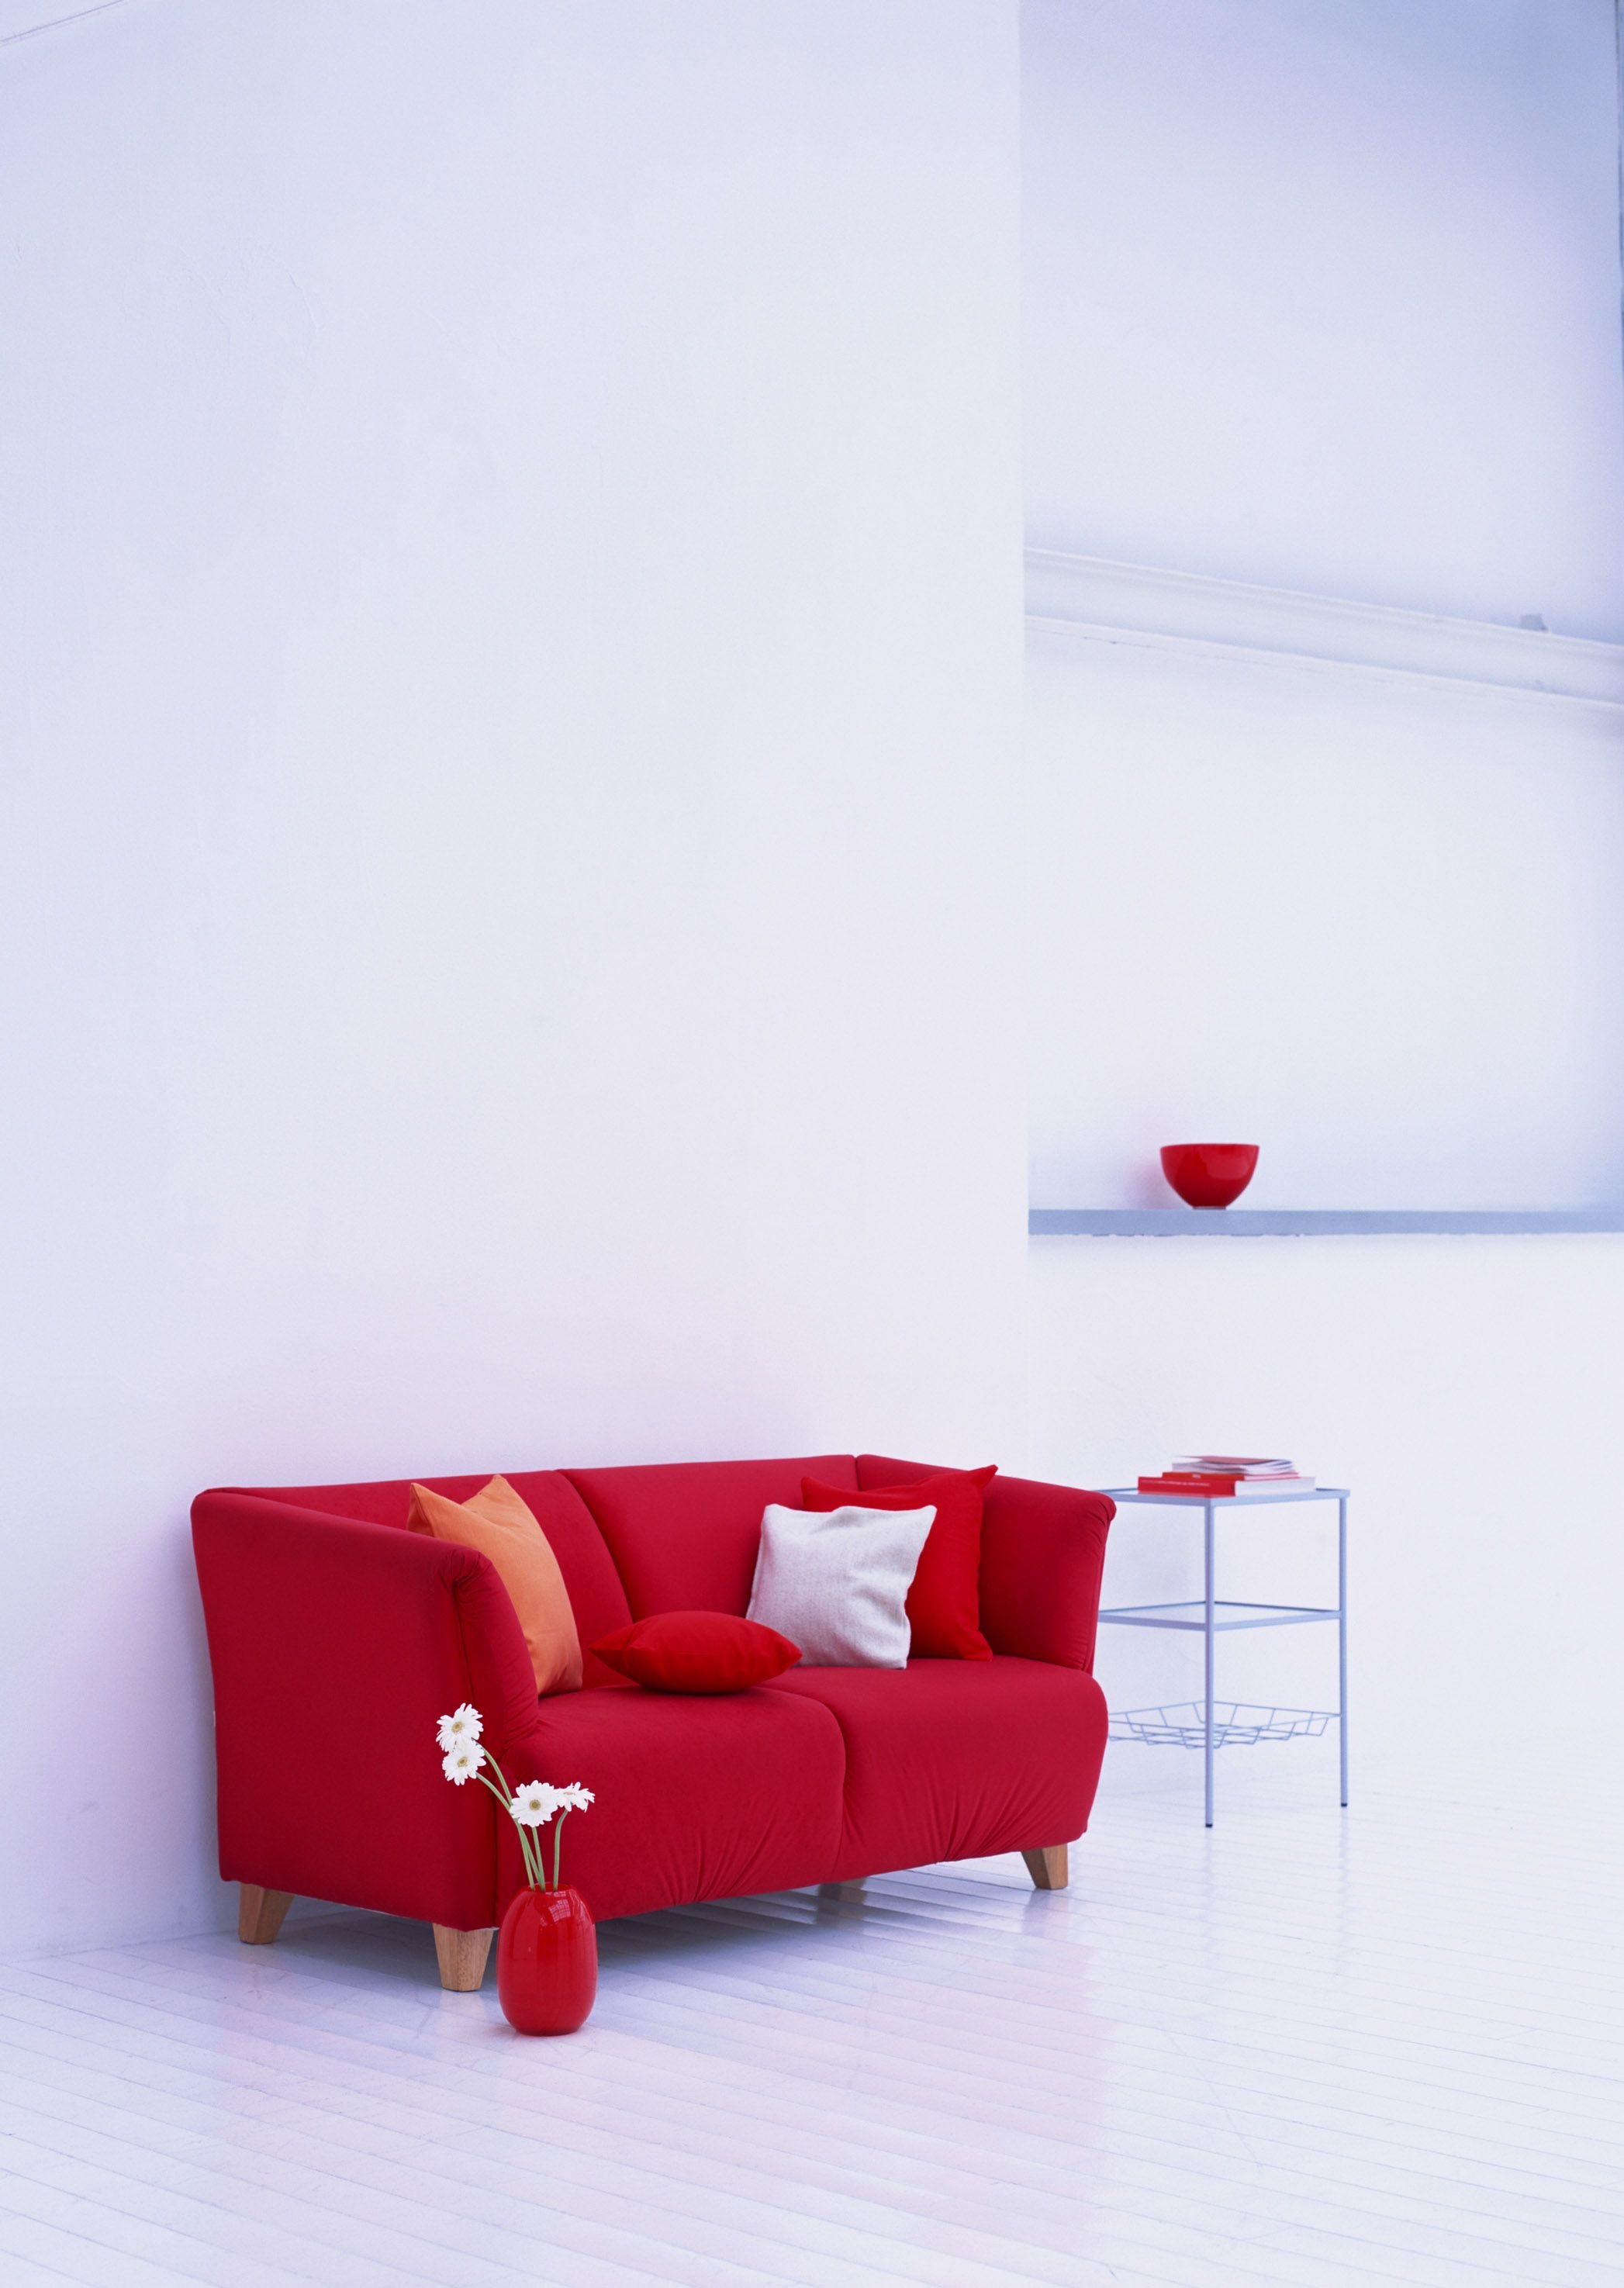 I have always wanted a red couch for the home pinterest